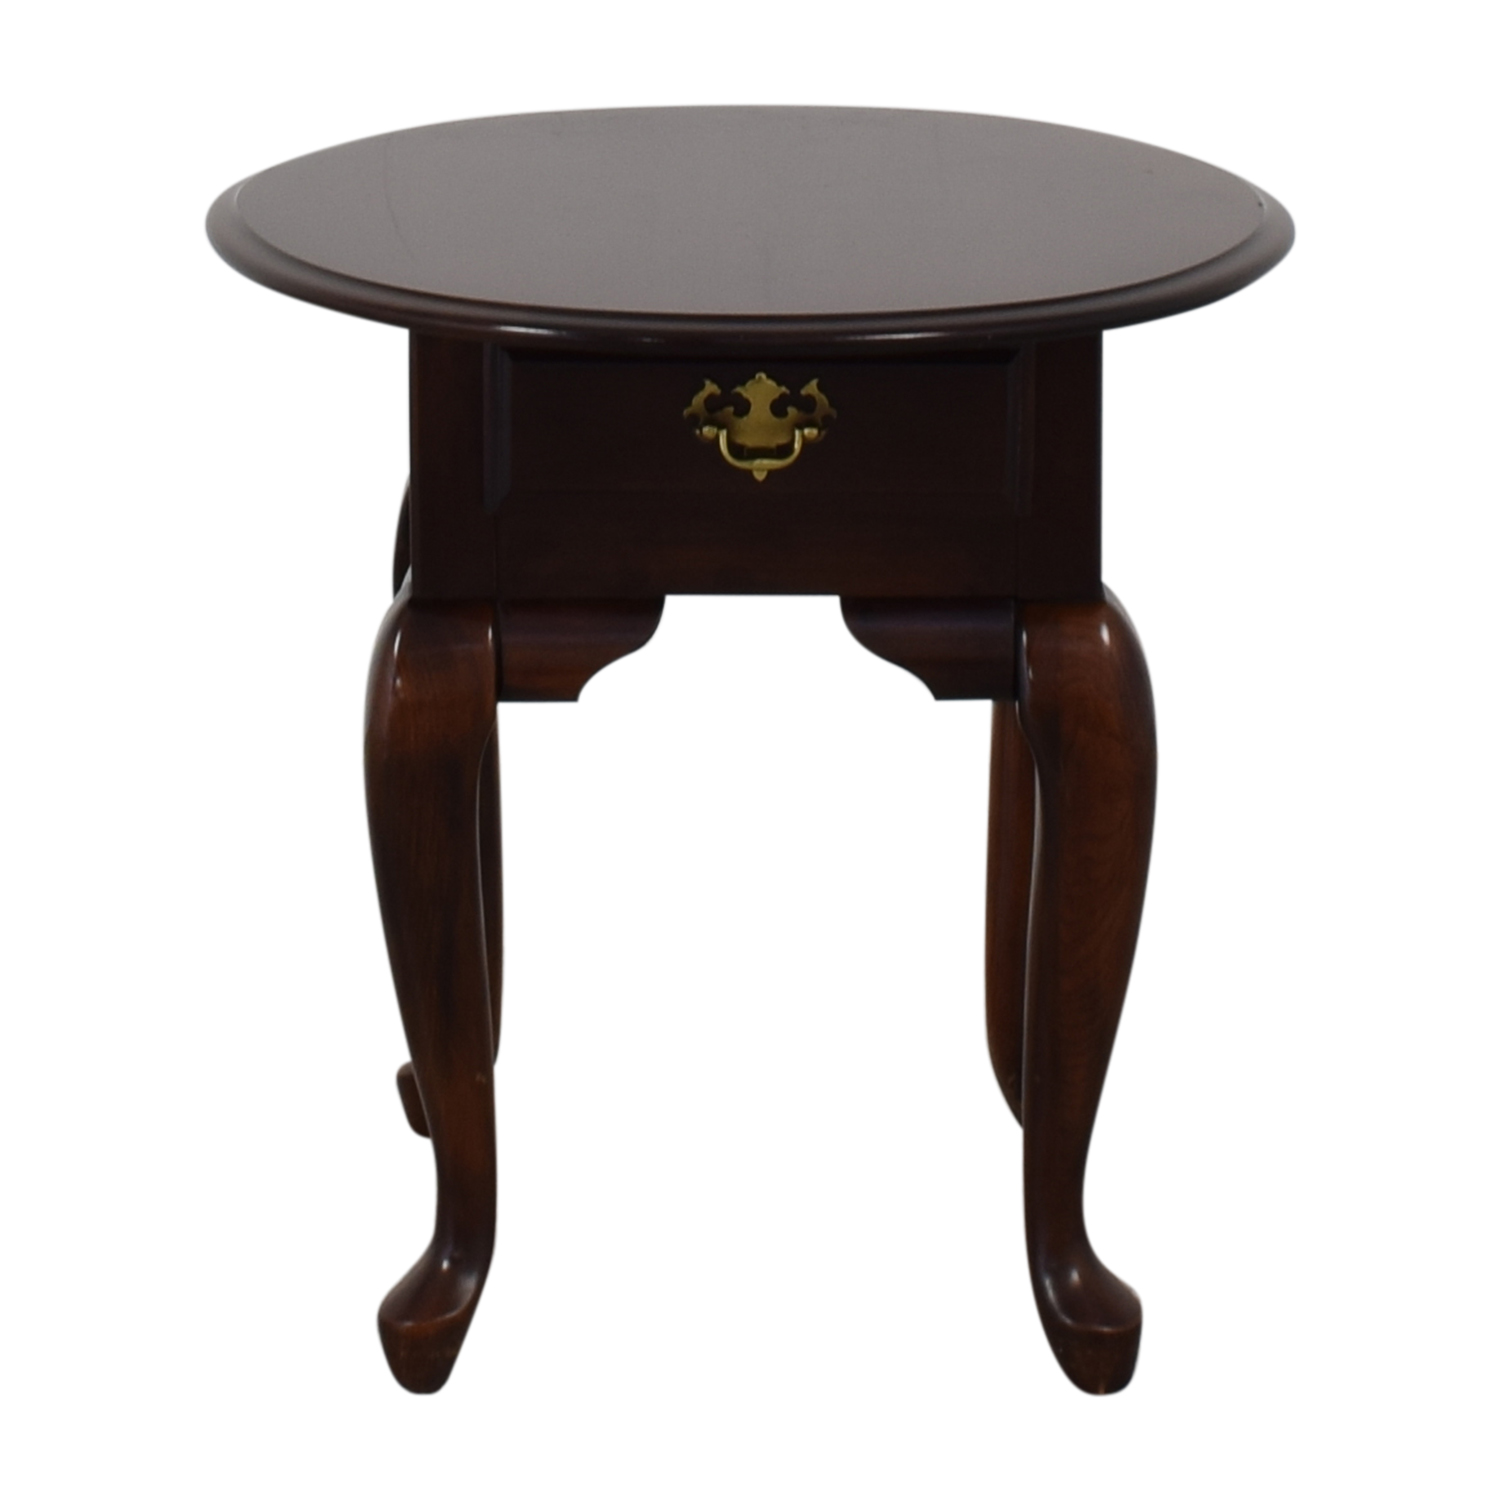 Thomasville Thomasville End Table dark brown